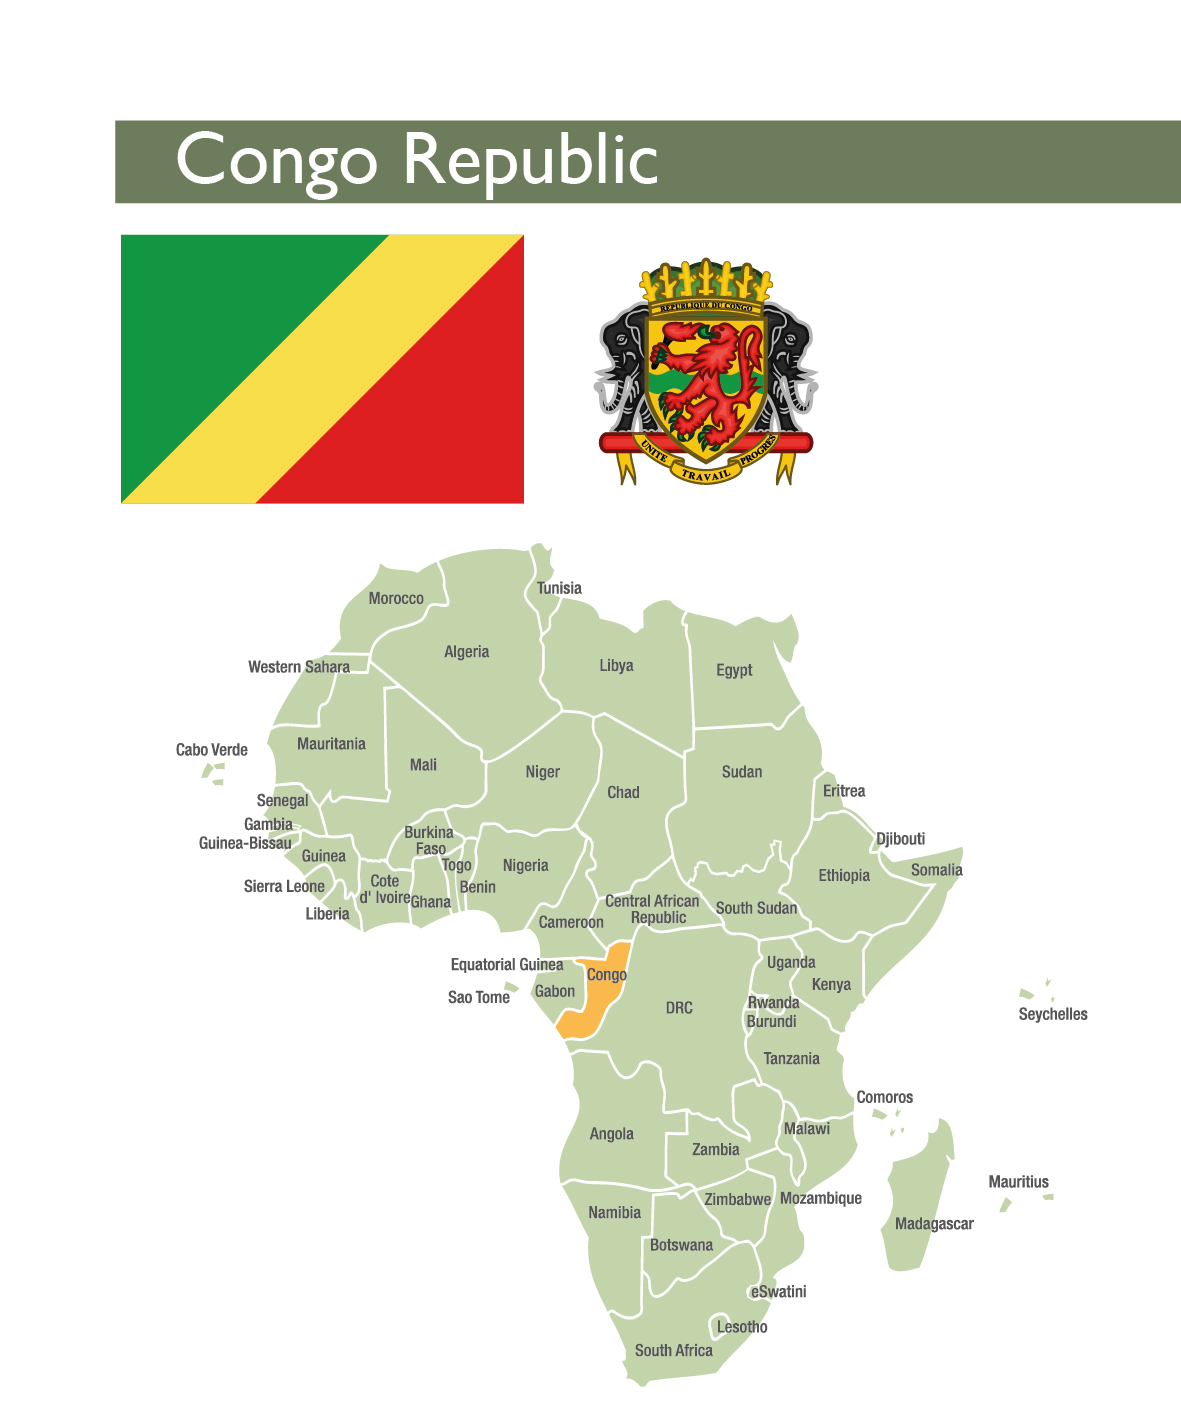 Congo, Republic of the - CAHF | Centre for Affordable Housing